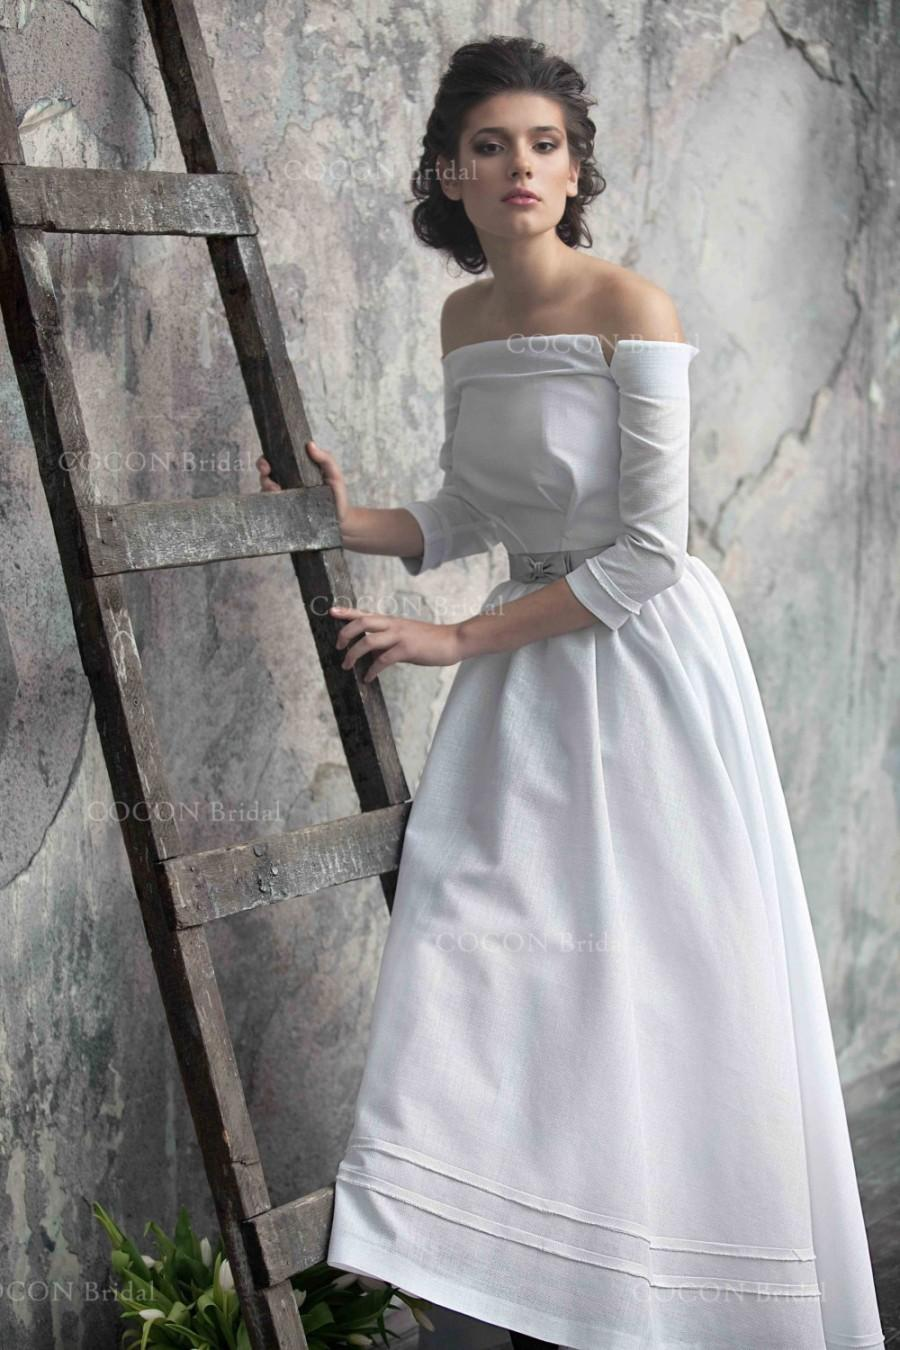 rustic country wedding dresses country rustic wedding dresses RUSTIC COUNTRY WEDDING DRESSES